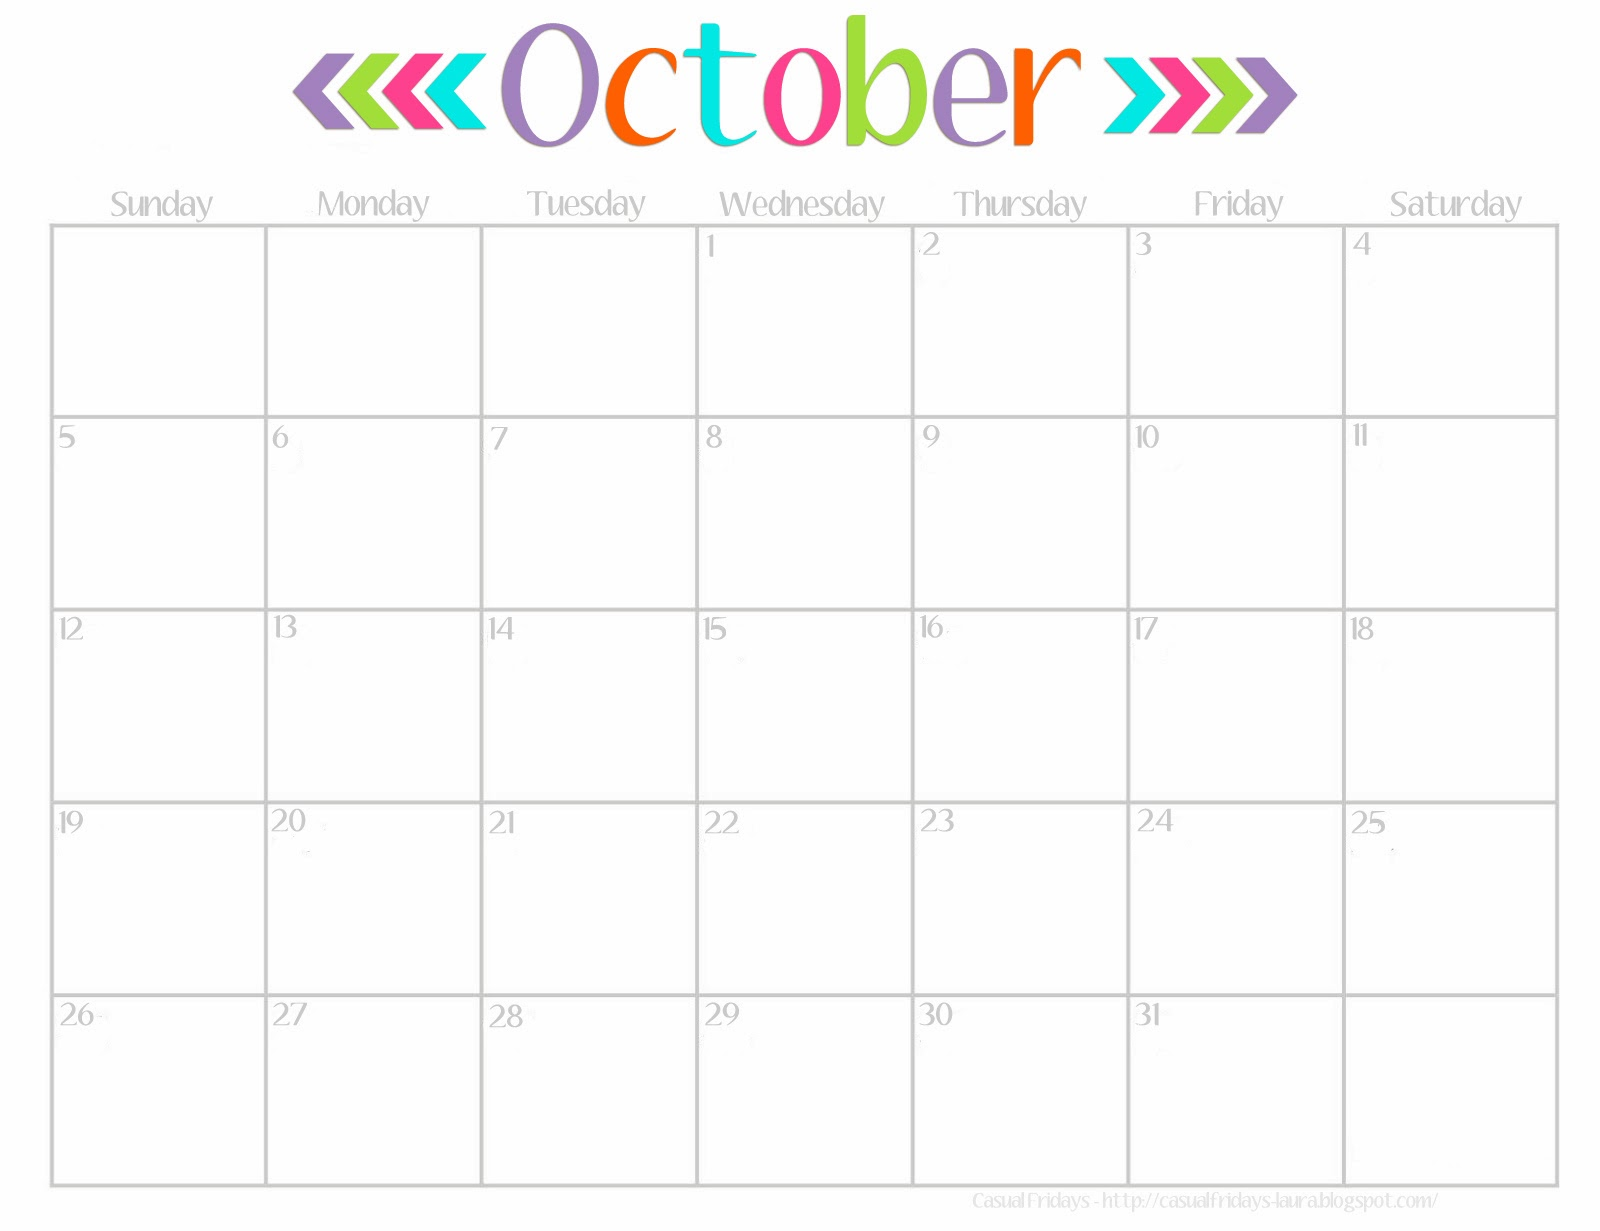 5 Images of Cute Wall Calendar 2015 Printable October